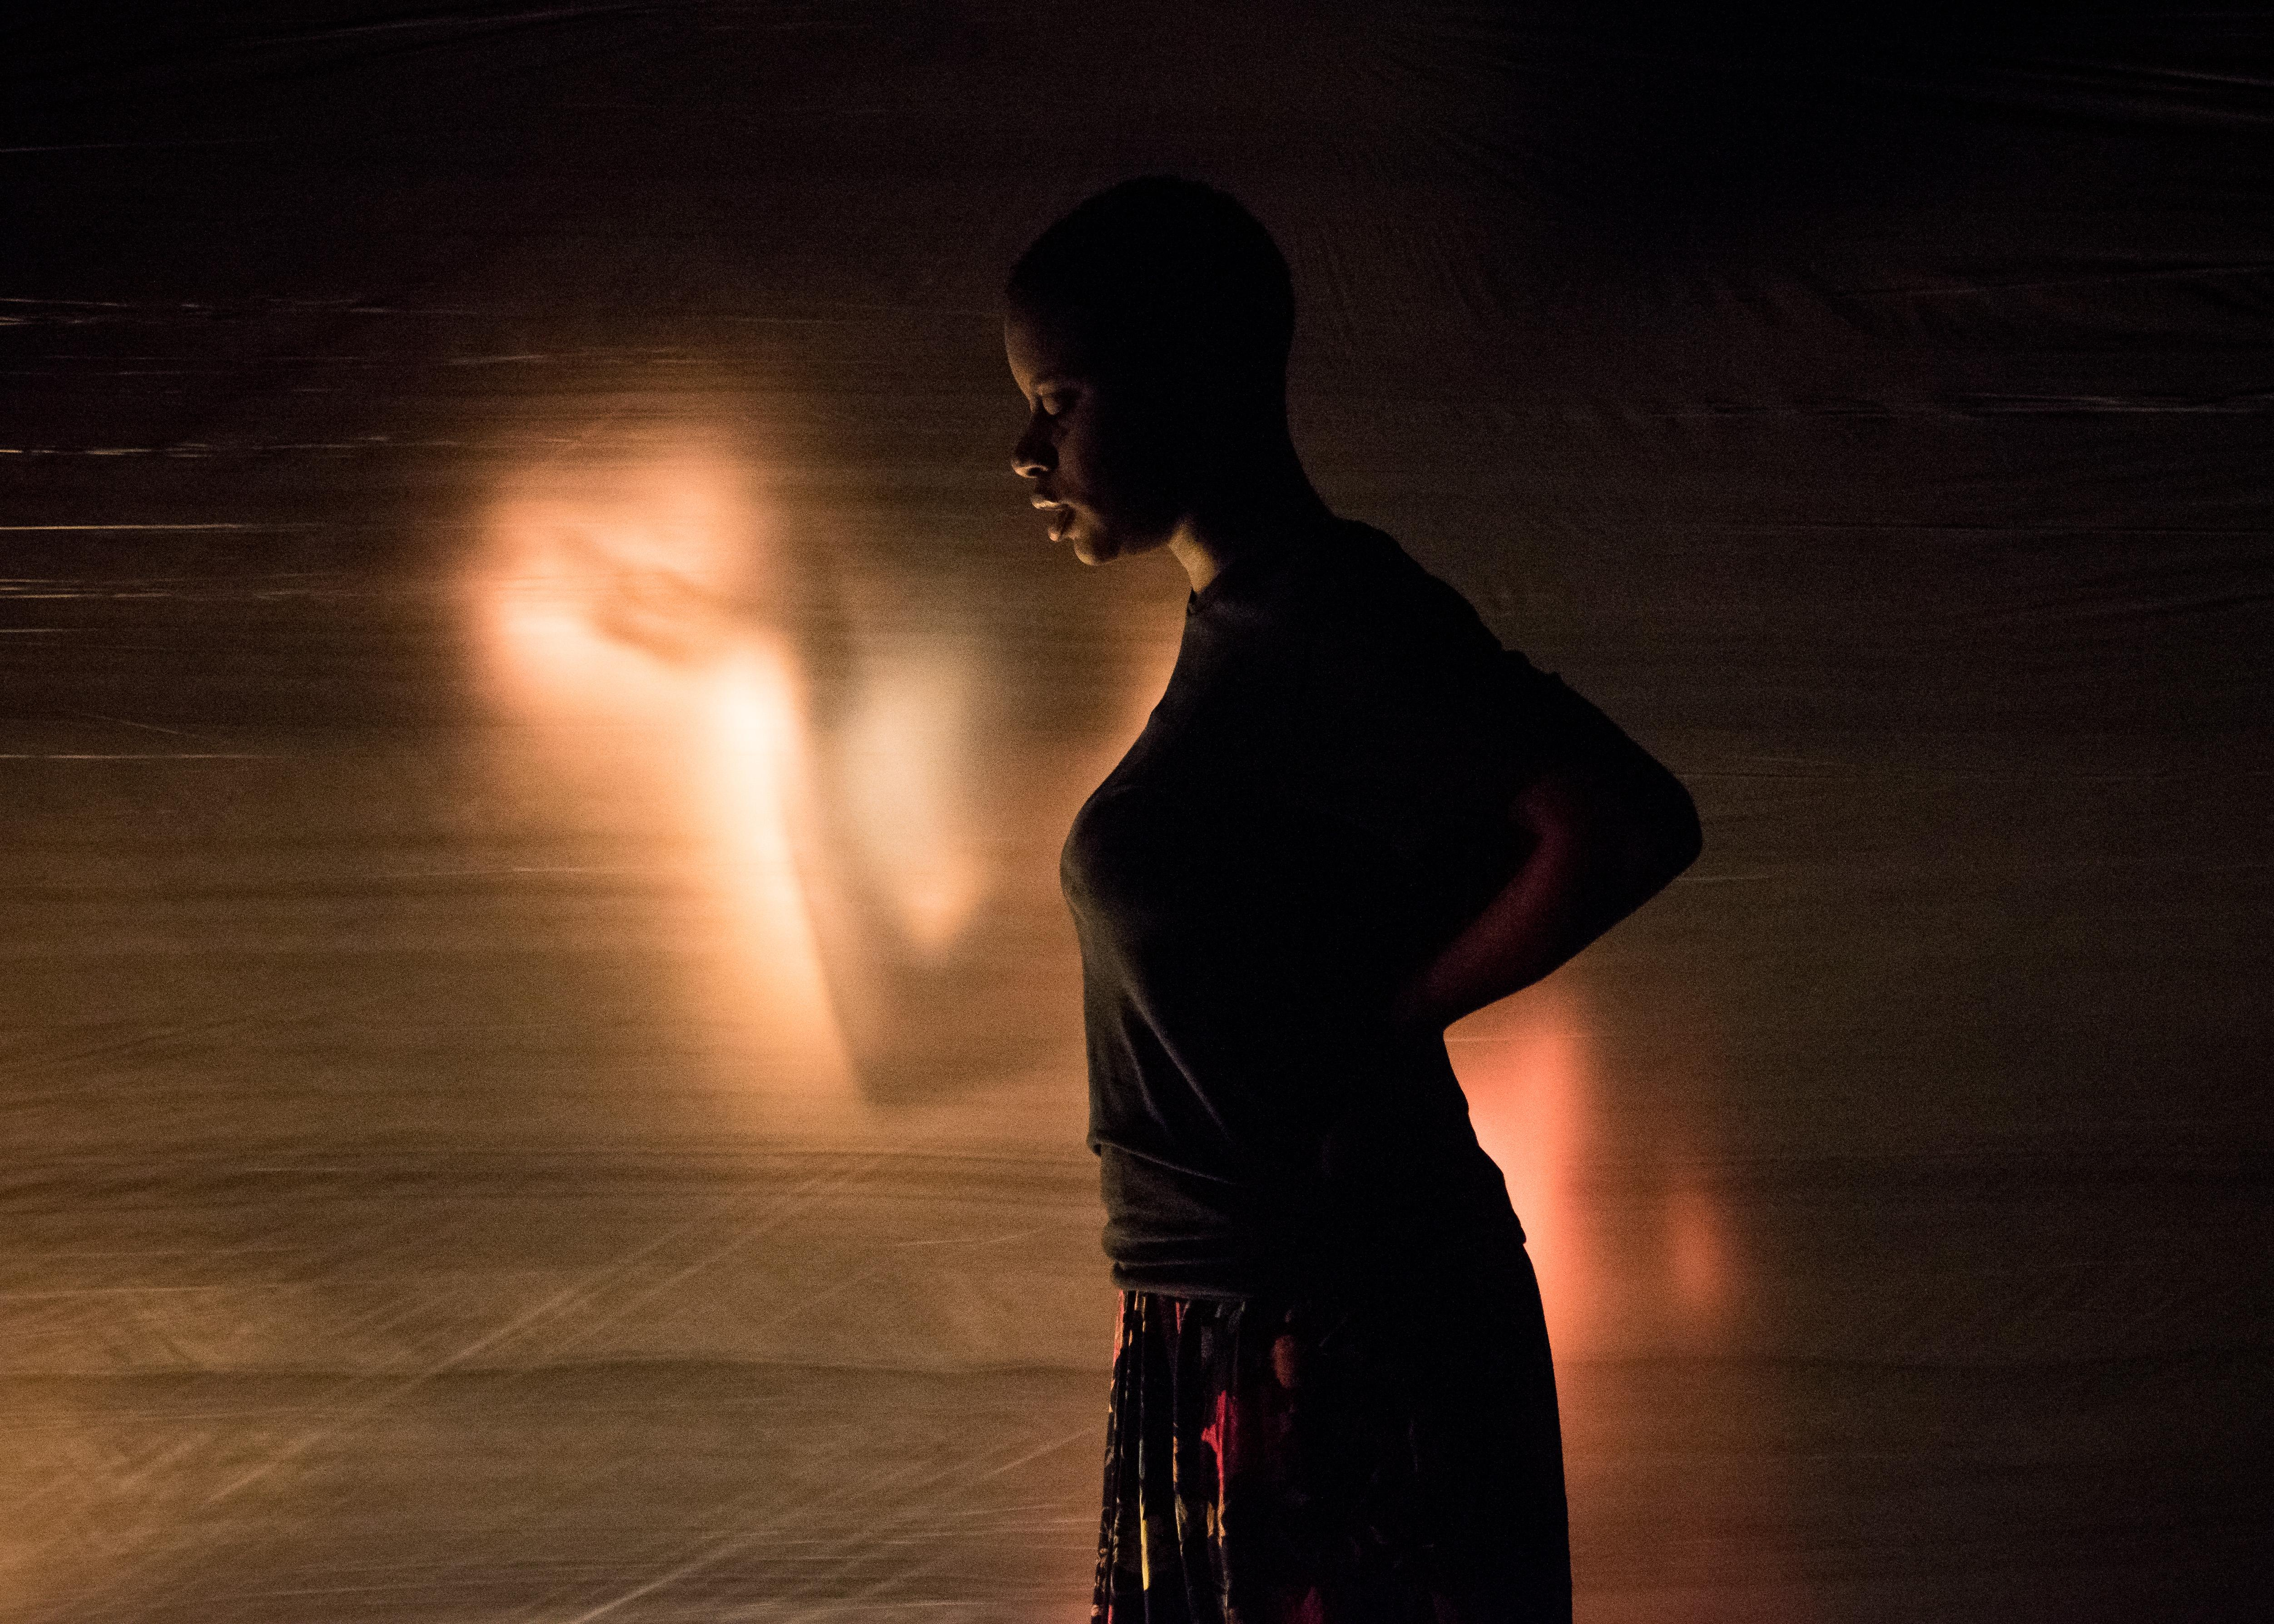 A young black woman in a dark, loose shirt and skirt stands in profile, her hands resting on the small of her back. Behind her we see the hazy glowing figure of upraised arms.